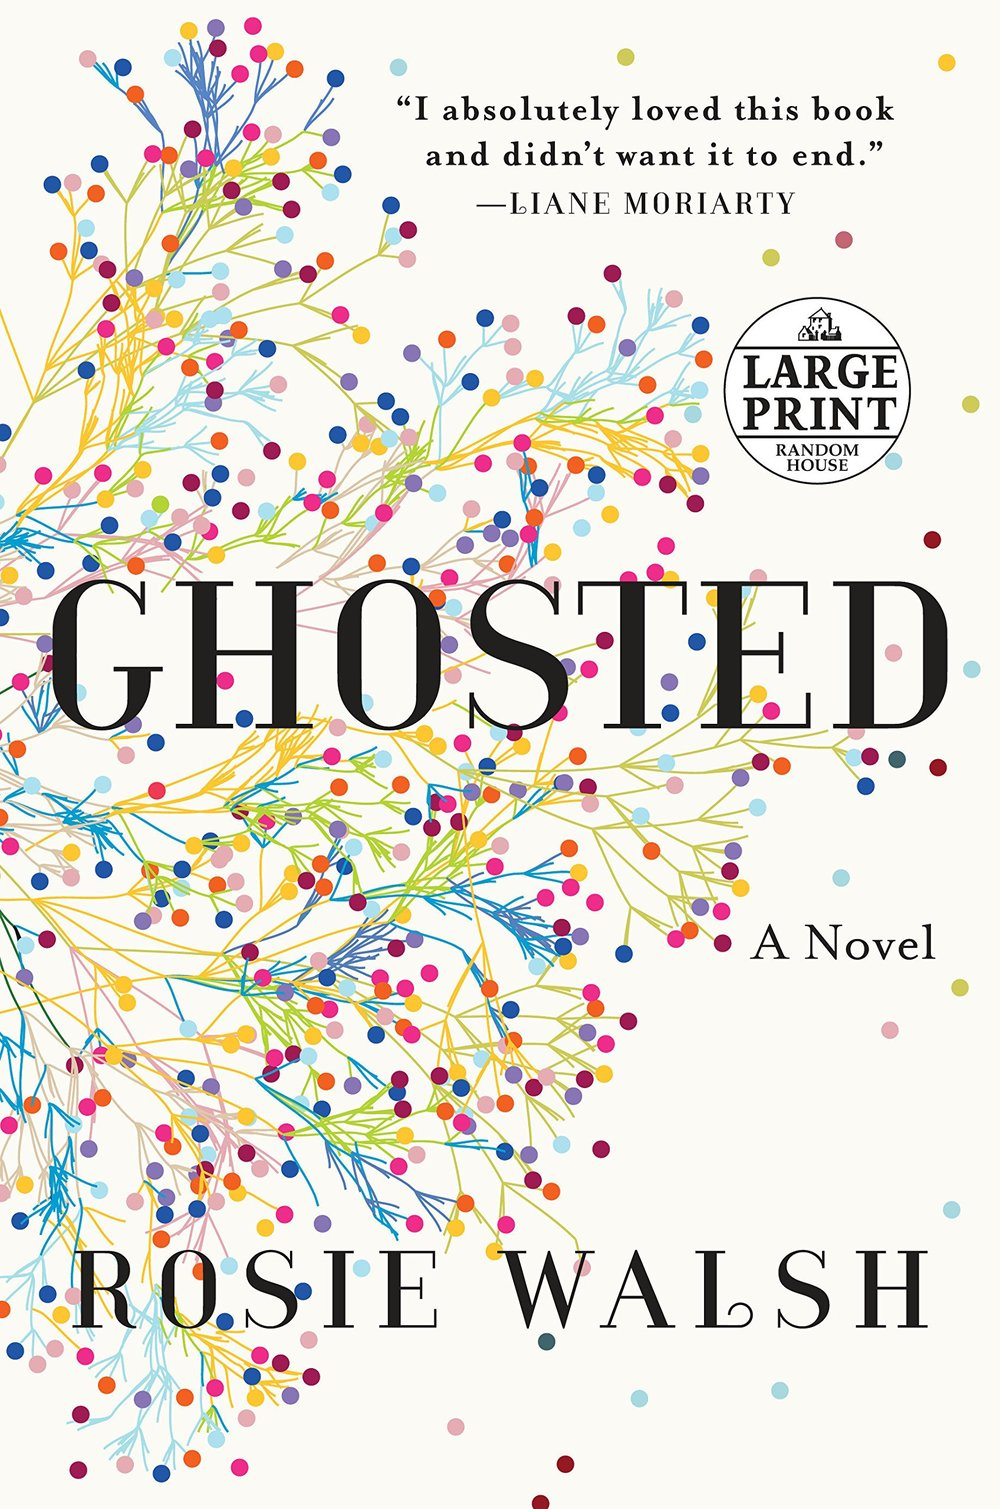 GHOSTED by Rosie Walsh   This instant New York Times bestseller tells the story of when Sarah meets Eddie. They connect and fall in love almost immediately. To Sarah, it seems as though her life has finally begun, and it's mutual: It's as though Eddie has been waiting for her, too. Sarah has never been so certain of anything. So when Eddie leaves for a long-booked vacation and promises to call from the airport, she has no cause to doubt him. But he doesn't call. Sarah's friends tell her to forget about him, but she can't. She knows something's happened--there must be an explanation. Minutes, days, weeks go by as Sarah becomes increasingly worried. But then she discovers she's right. There is a reason for Eddie's disappearance, and it's the one thing they didn't share with each other: the truth.